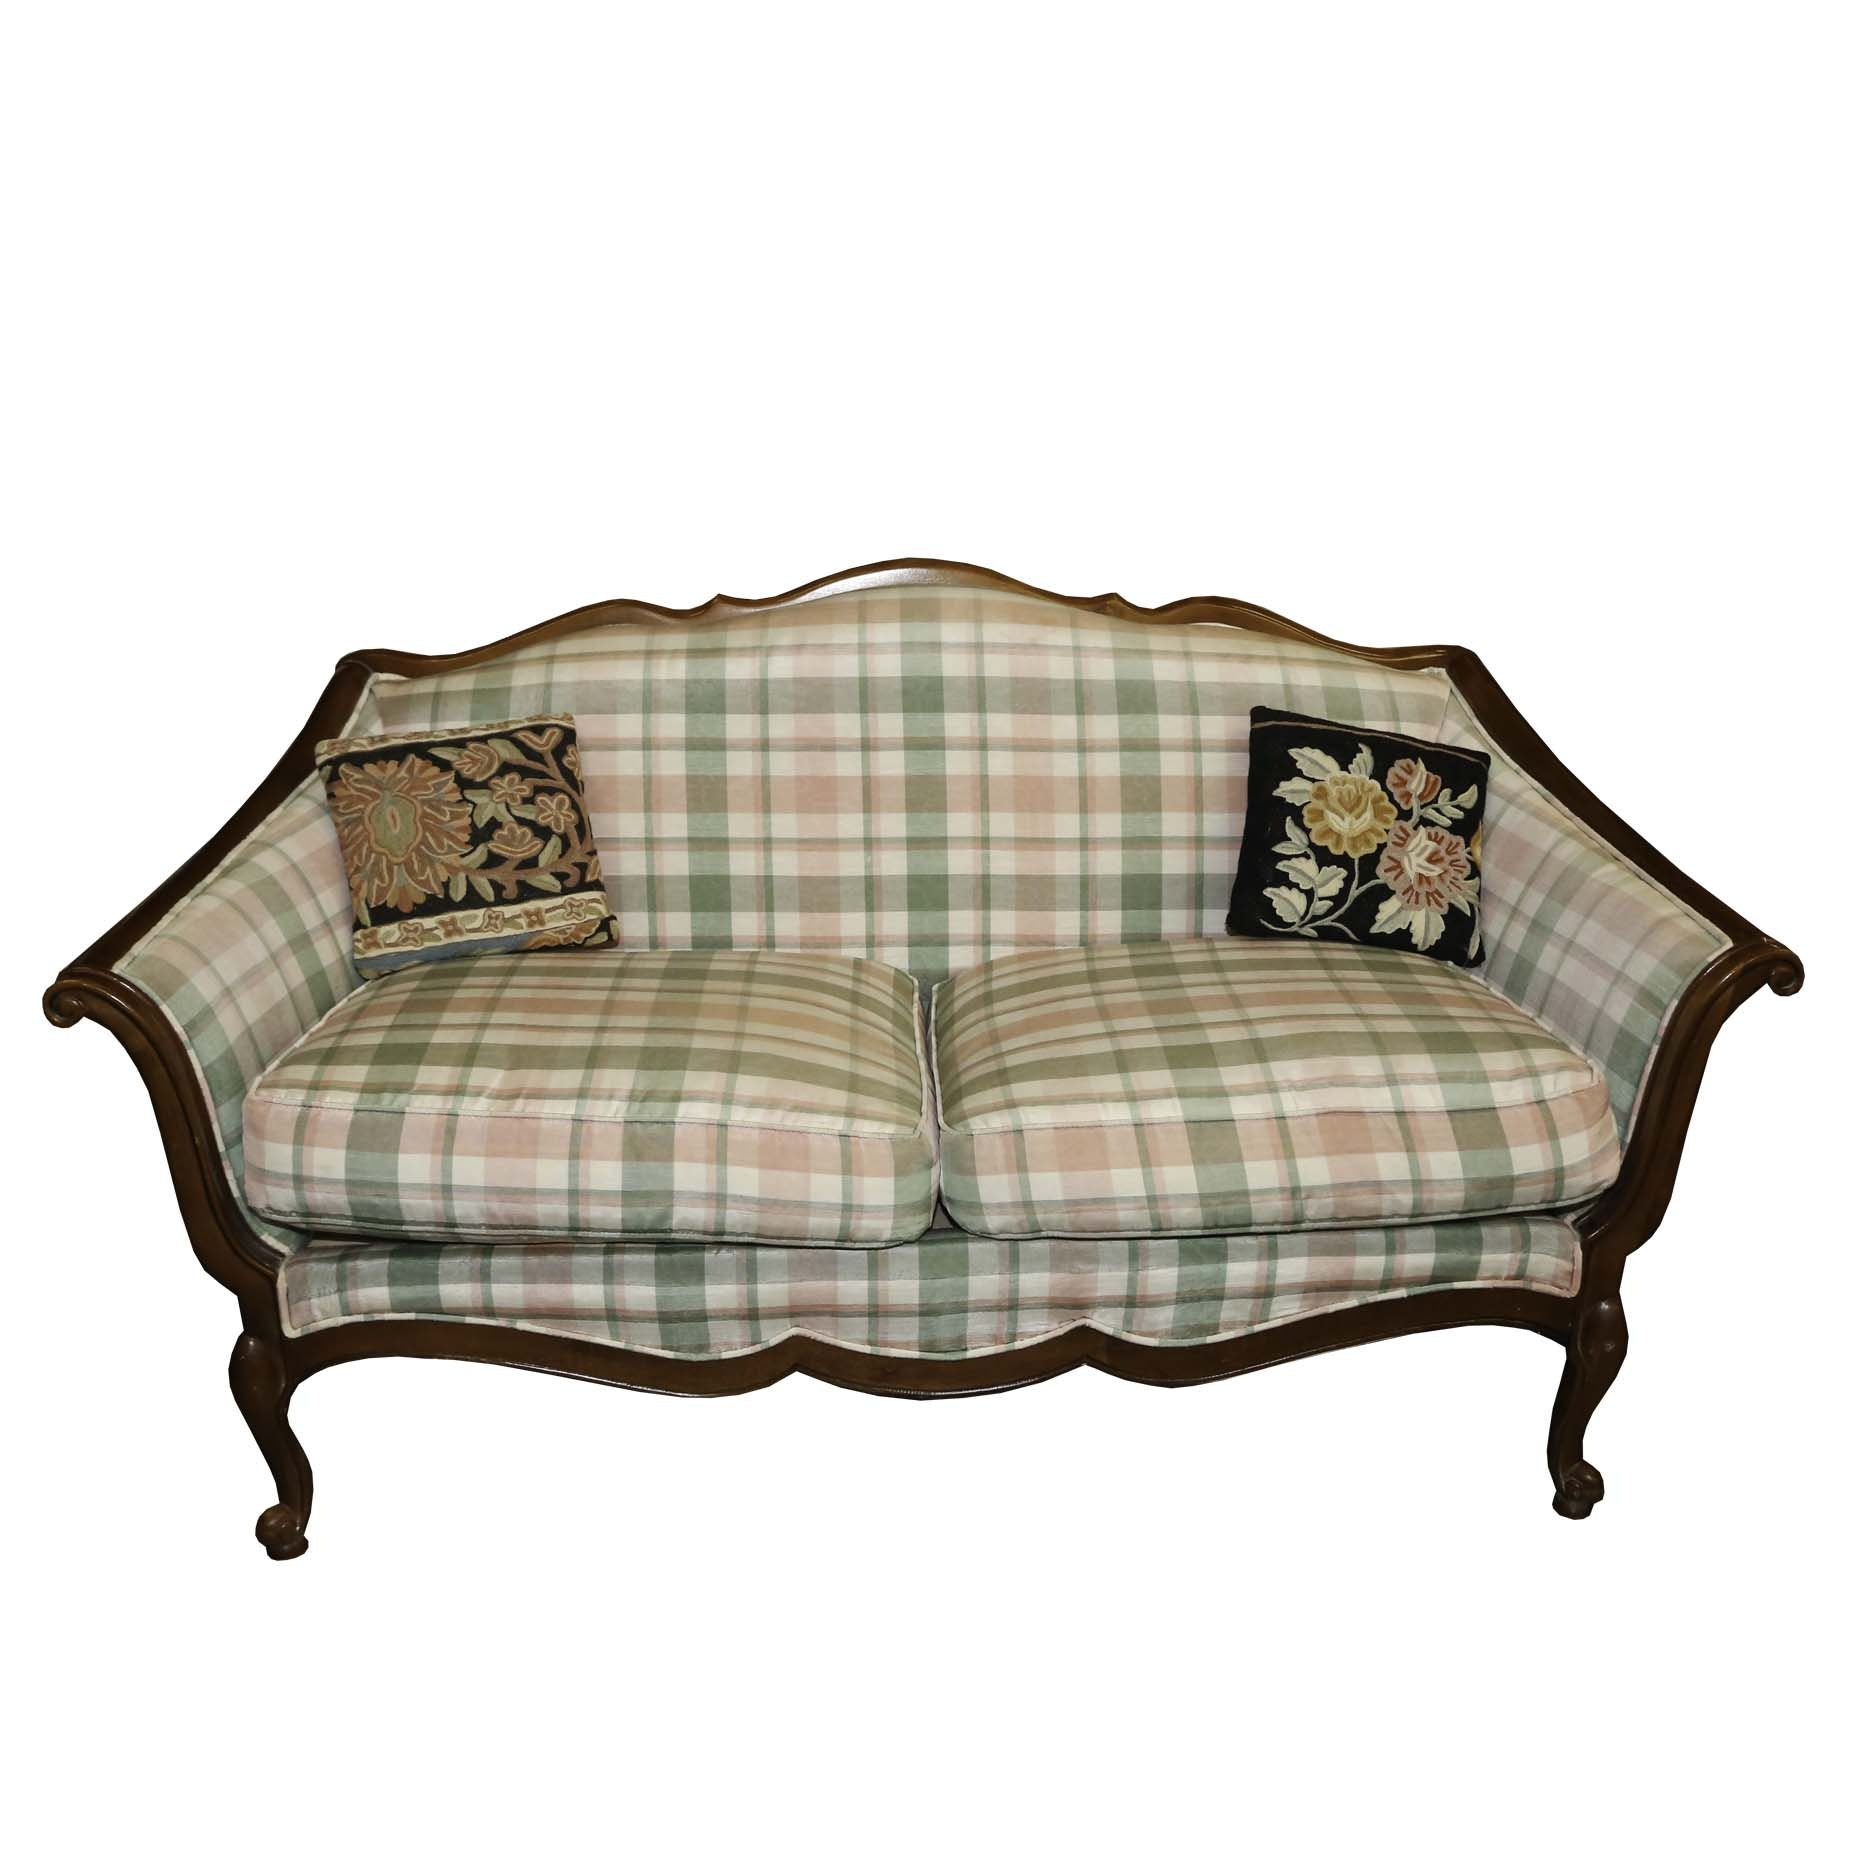 French Provincial Style Settee by Lane